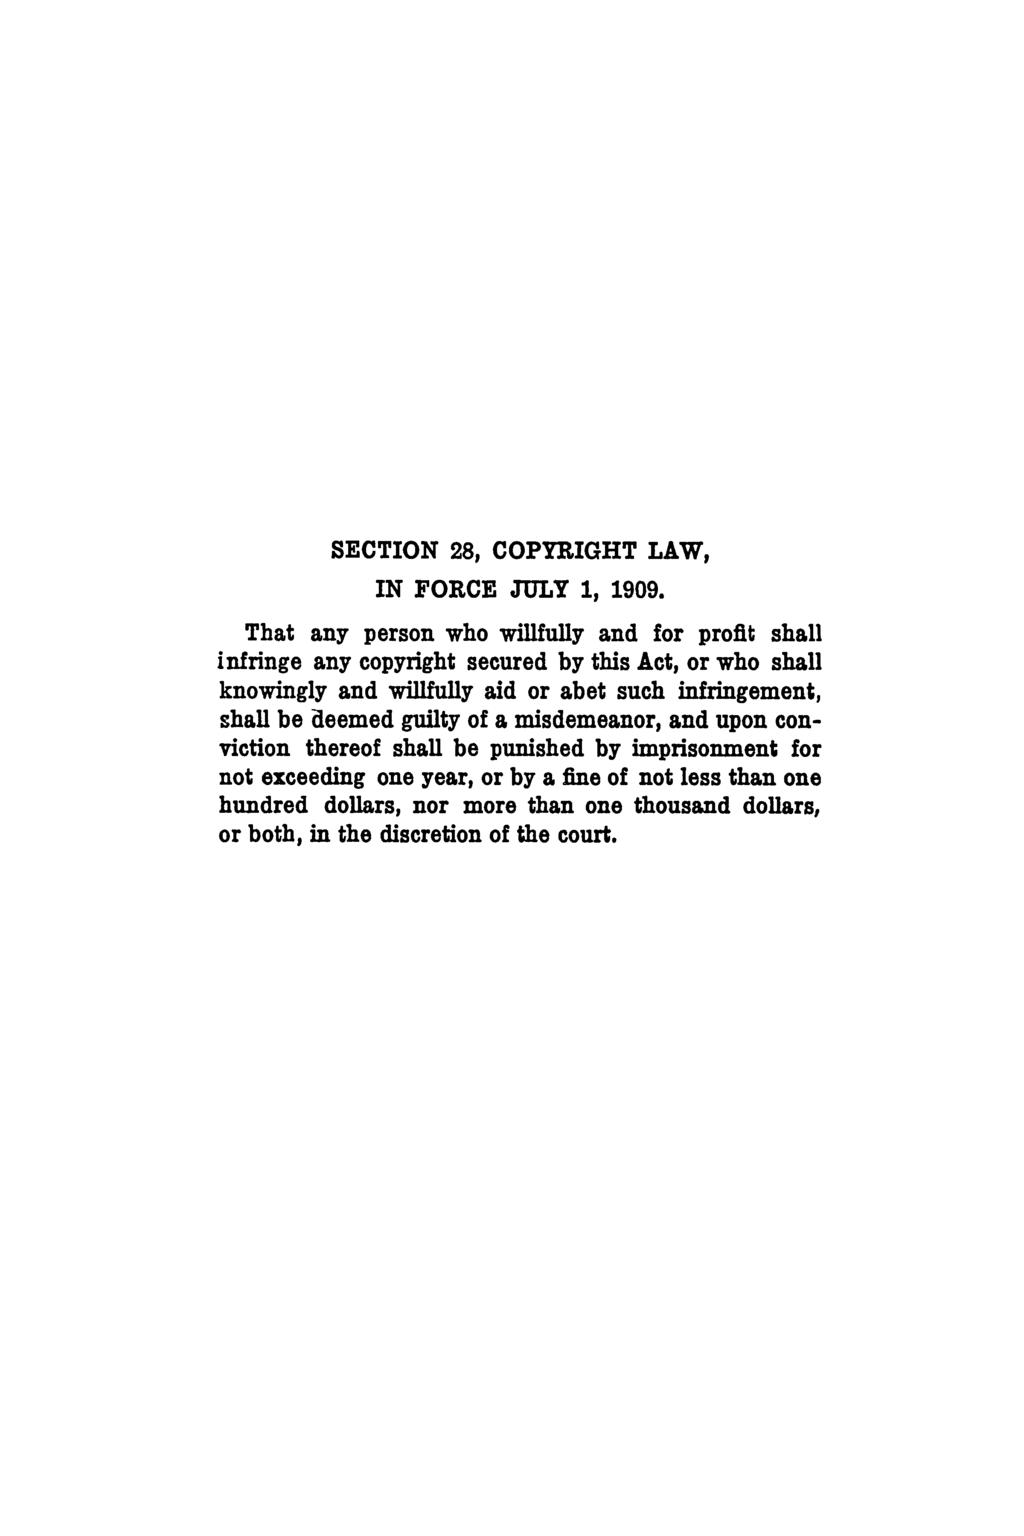 SECTION 28, COPYRIGHT LAW, IN FORCE JULY 1, 1909.